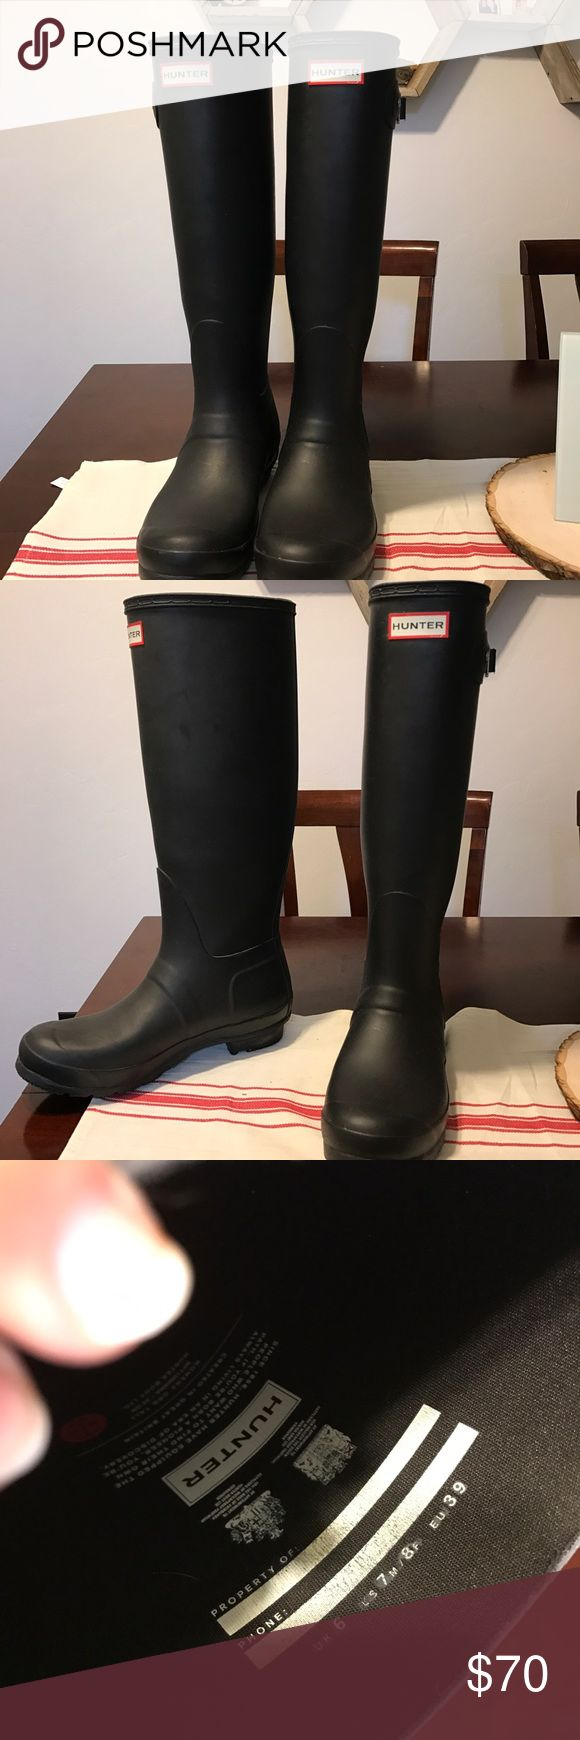 Hunter boots black matte Bought from another woman on Poshmark but I never had the chance to wear them out and still haven't and it's been 3 months since purchasing! Excellent condition size 8 women Hunter Boots Shoes Winter & Rain Boots